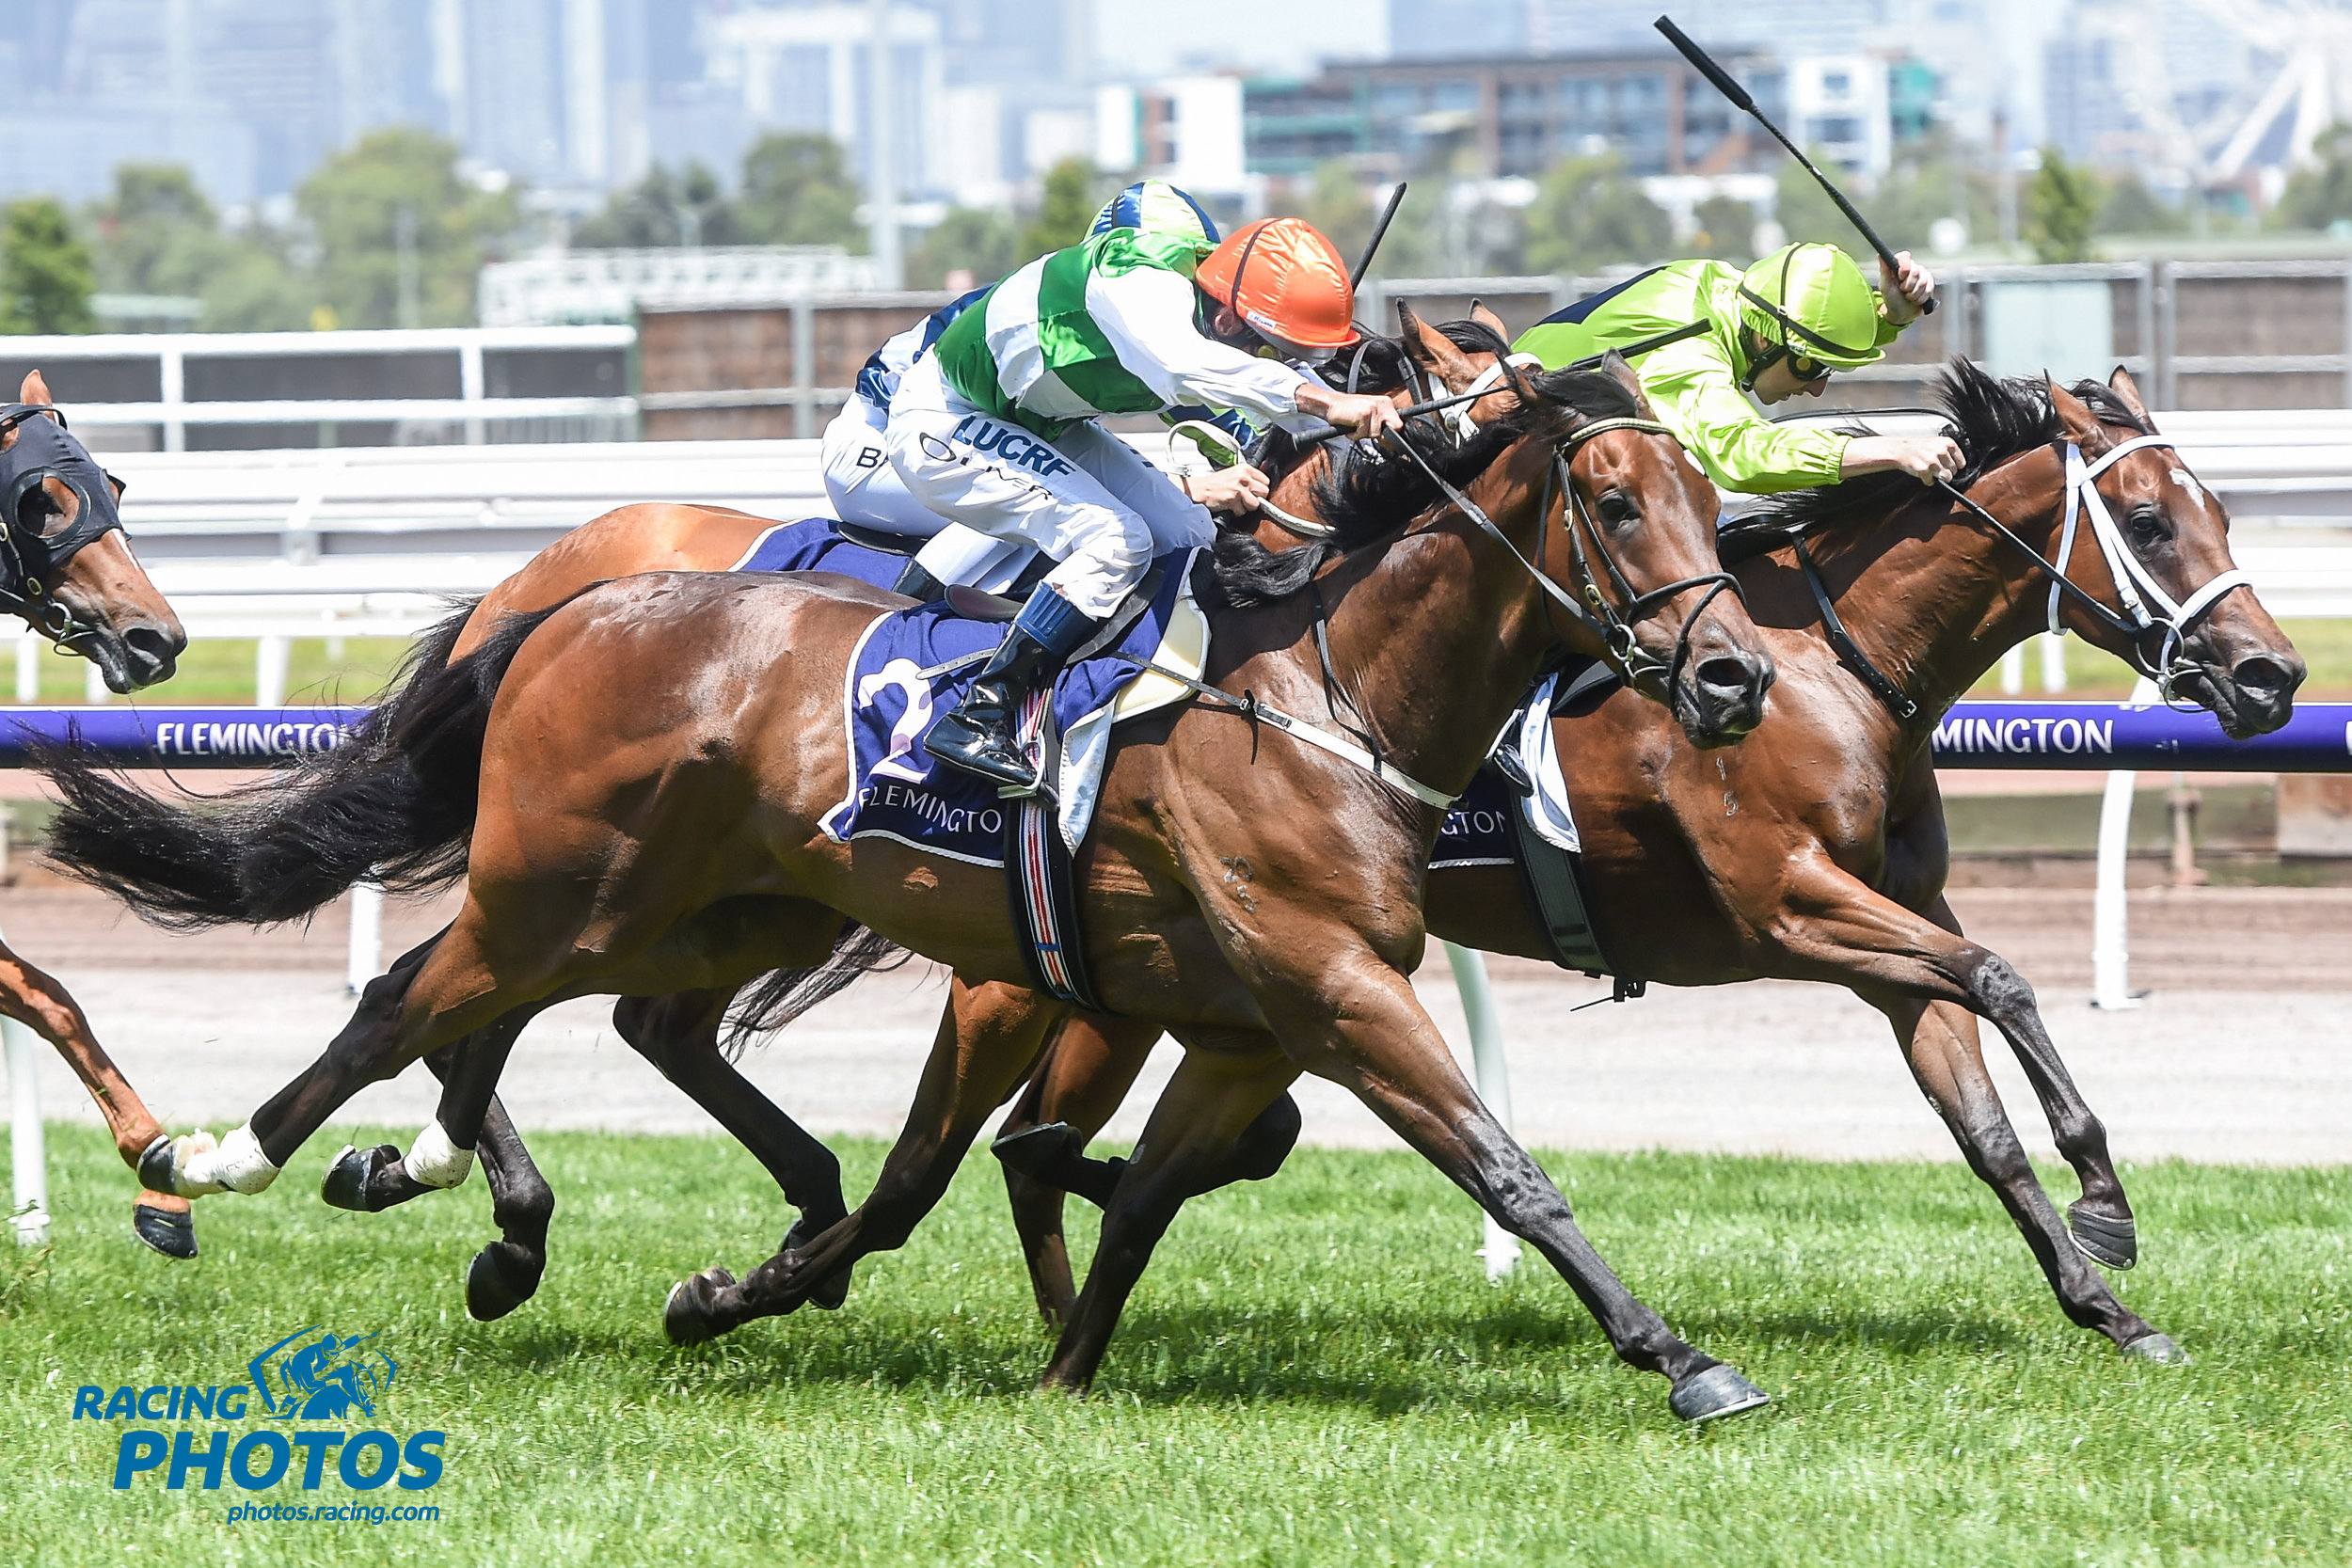 Image courtesy Racing Photos - O'Tauto gets up in the last stride at Flemington on Saturday (12/01/2019).